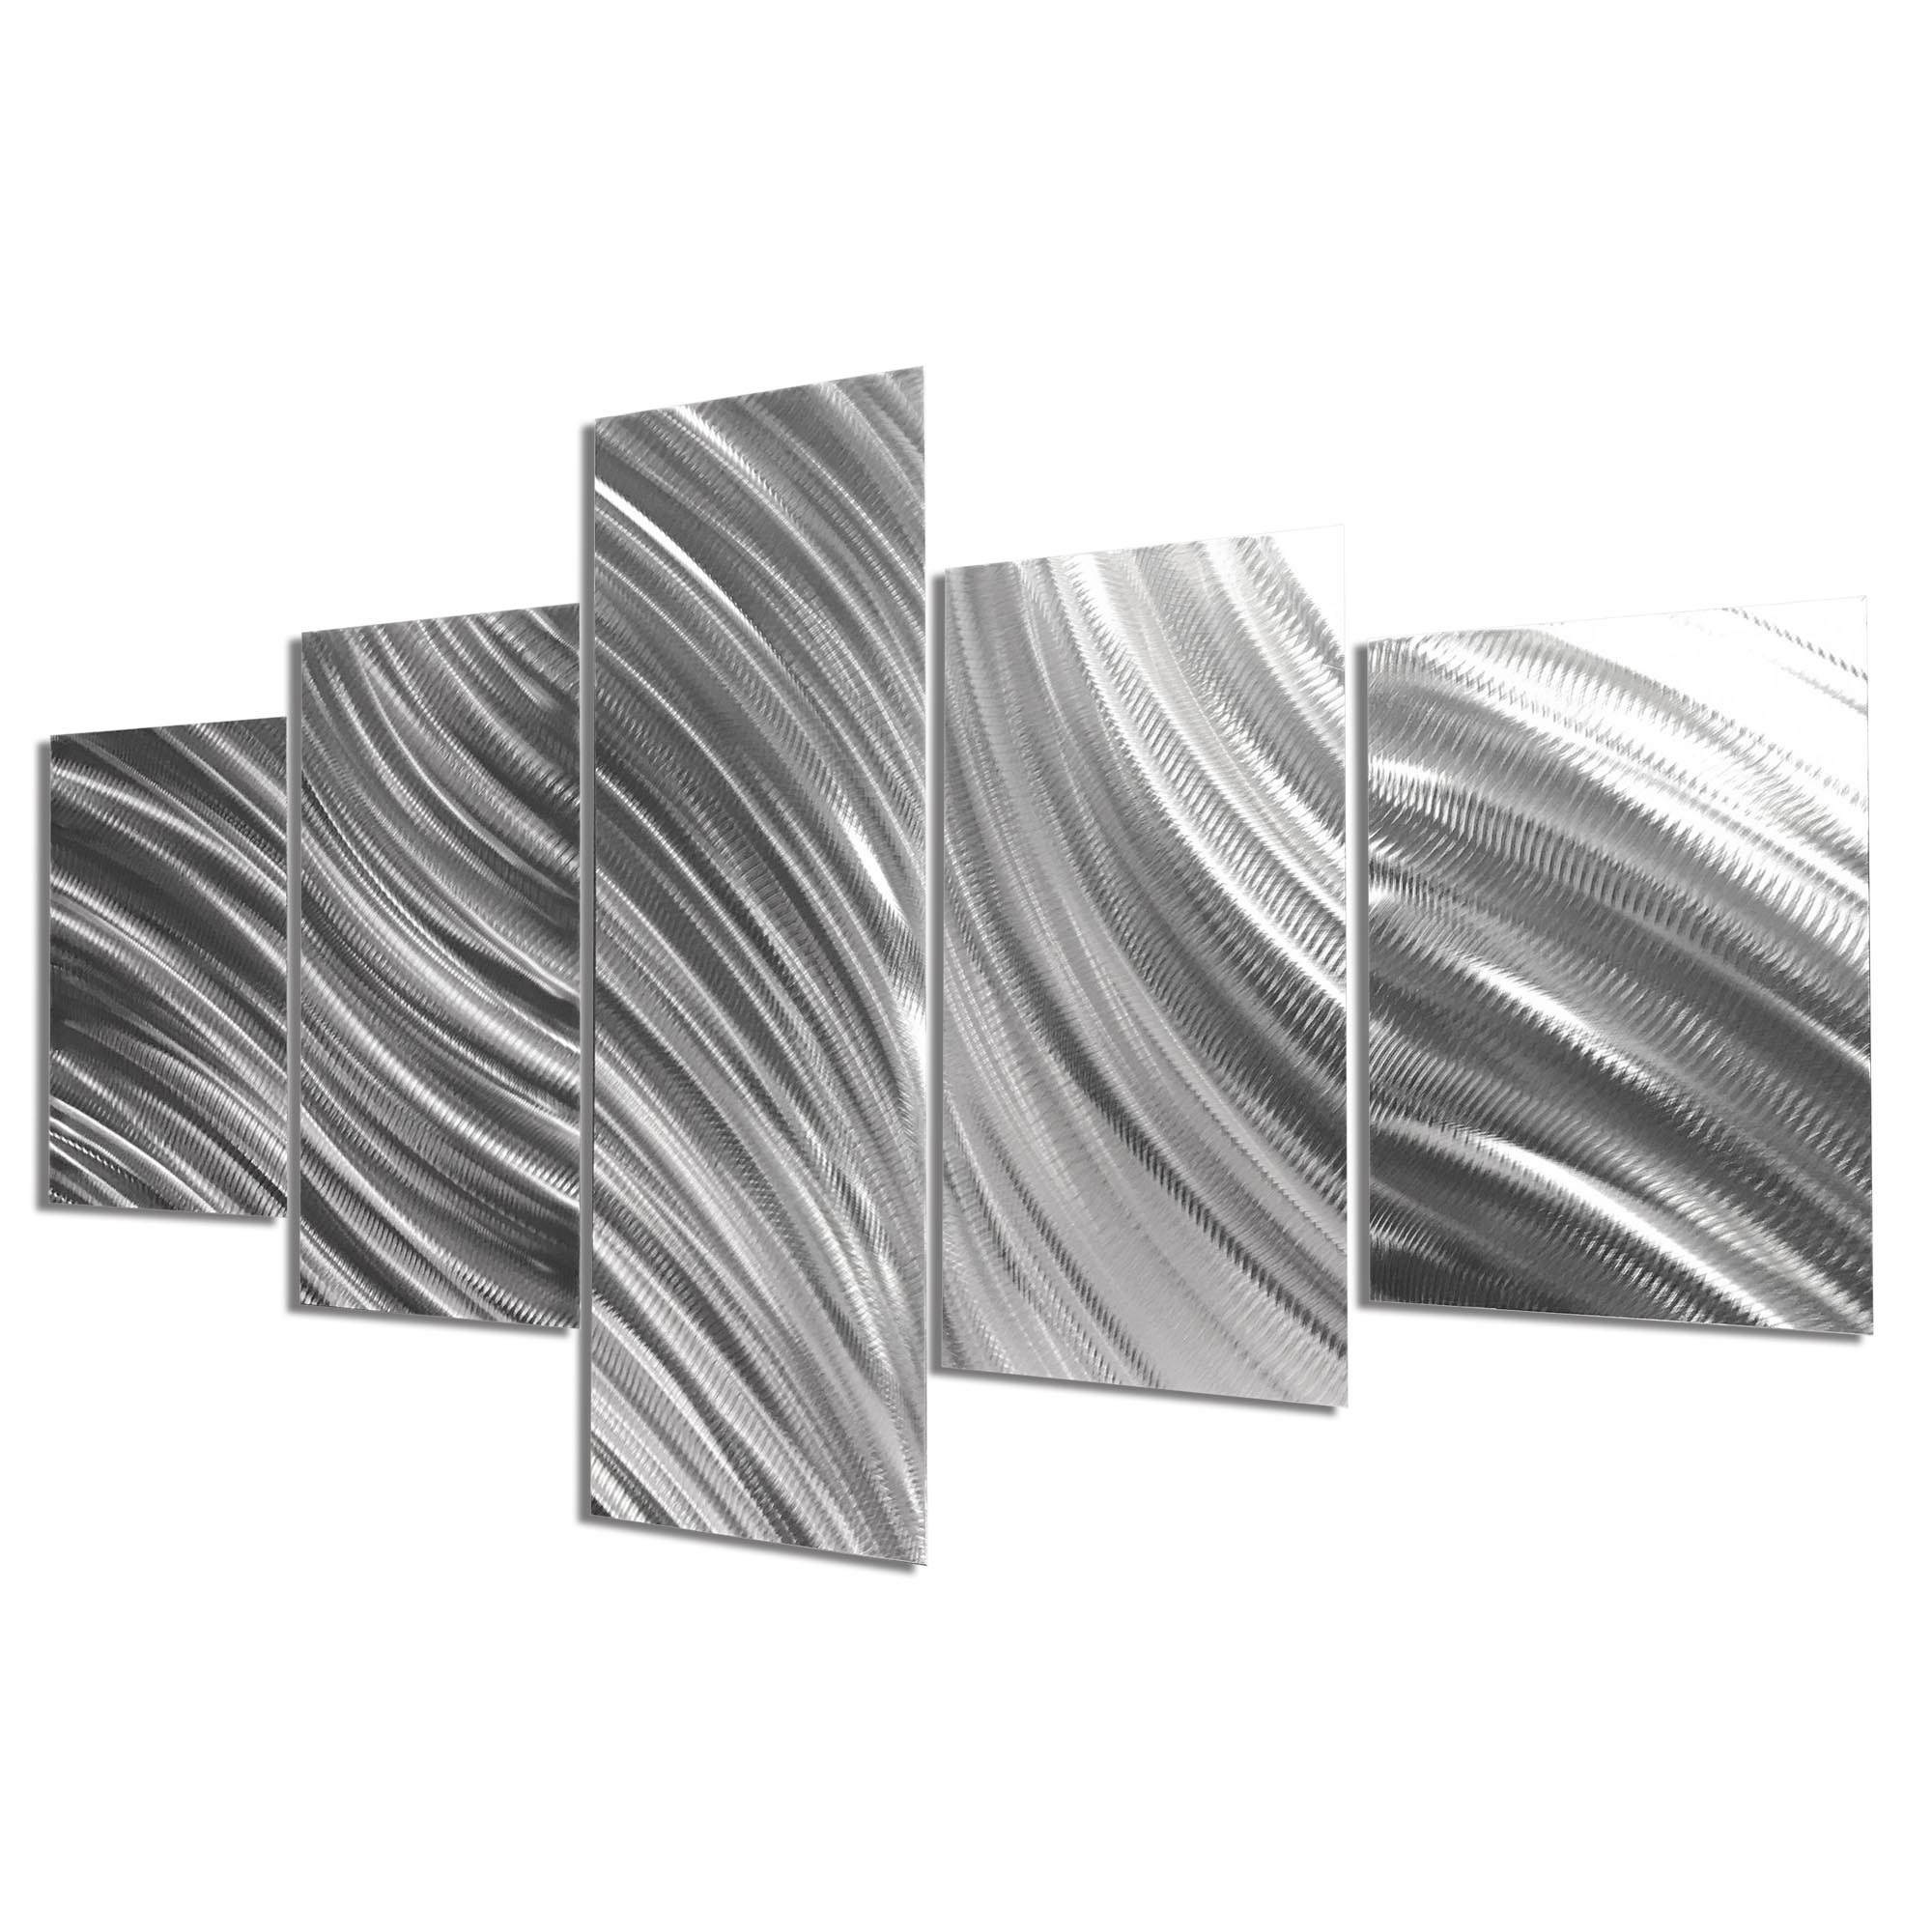 Columnar Flow 64x36in. Natural Aluminum Abstract Decor - Image 2